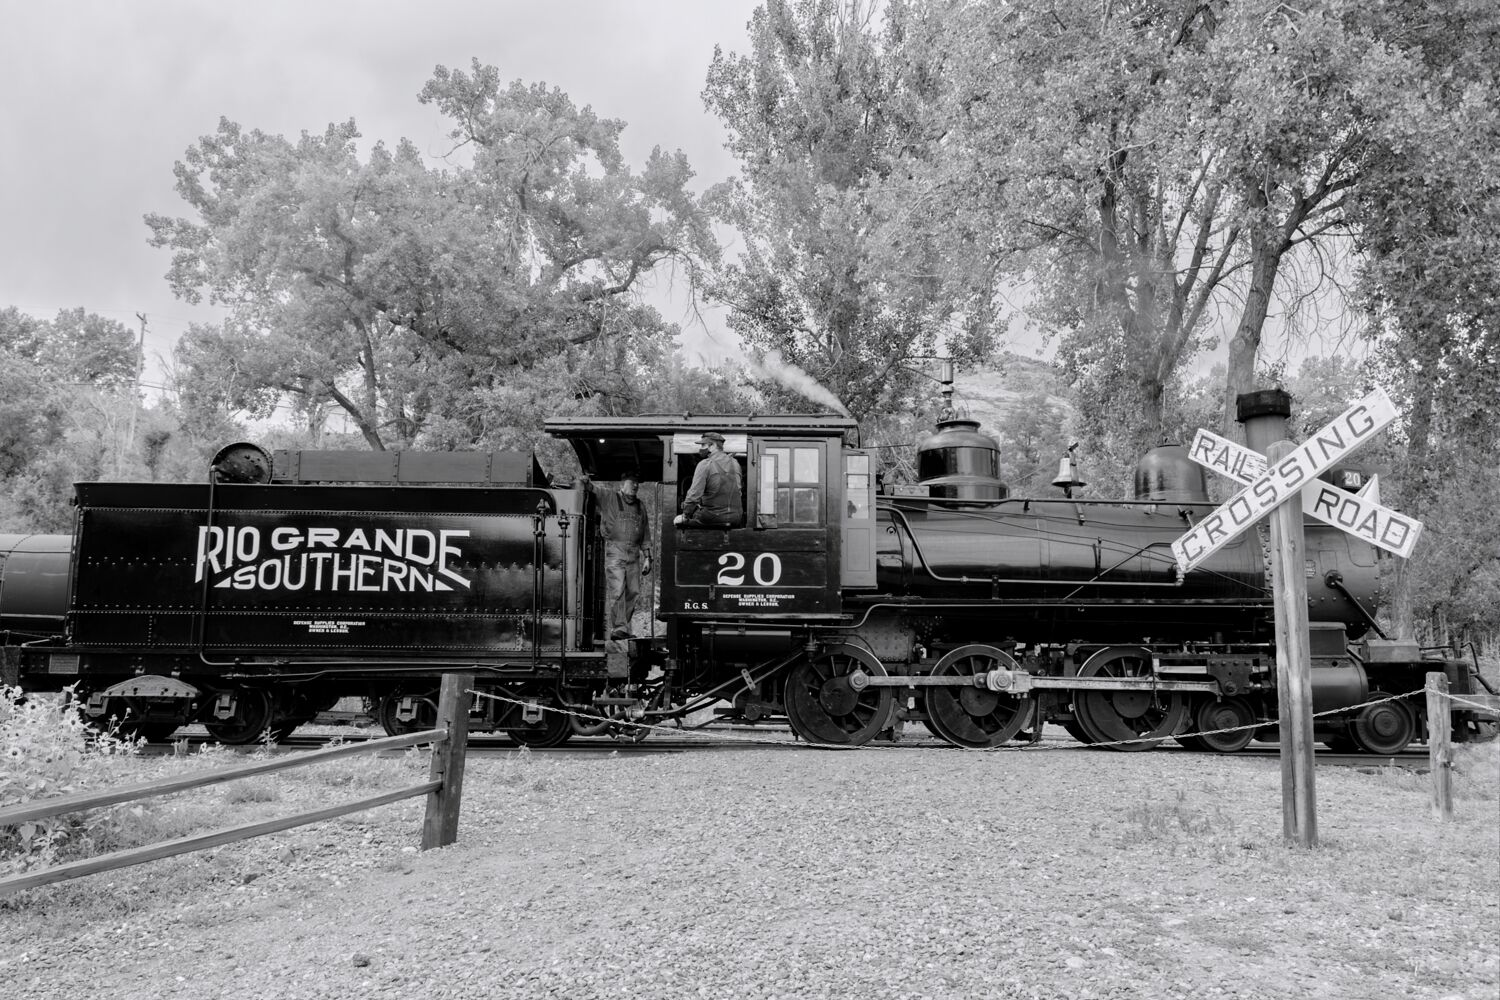 Rio Grande Southern number 20 sits at a railroad crossing waiting for the highball so she can continue on with her chores at...